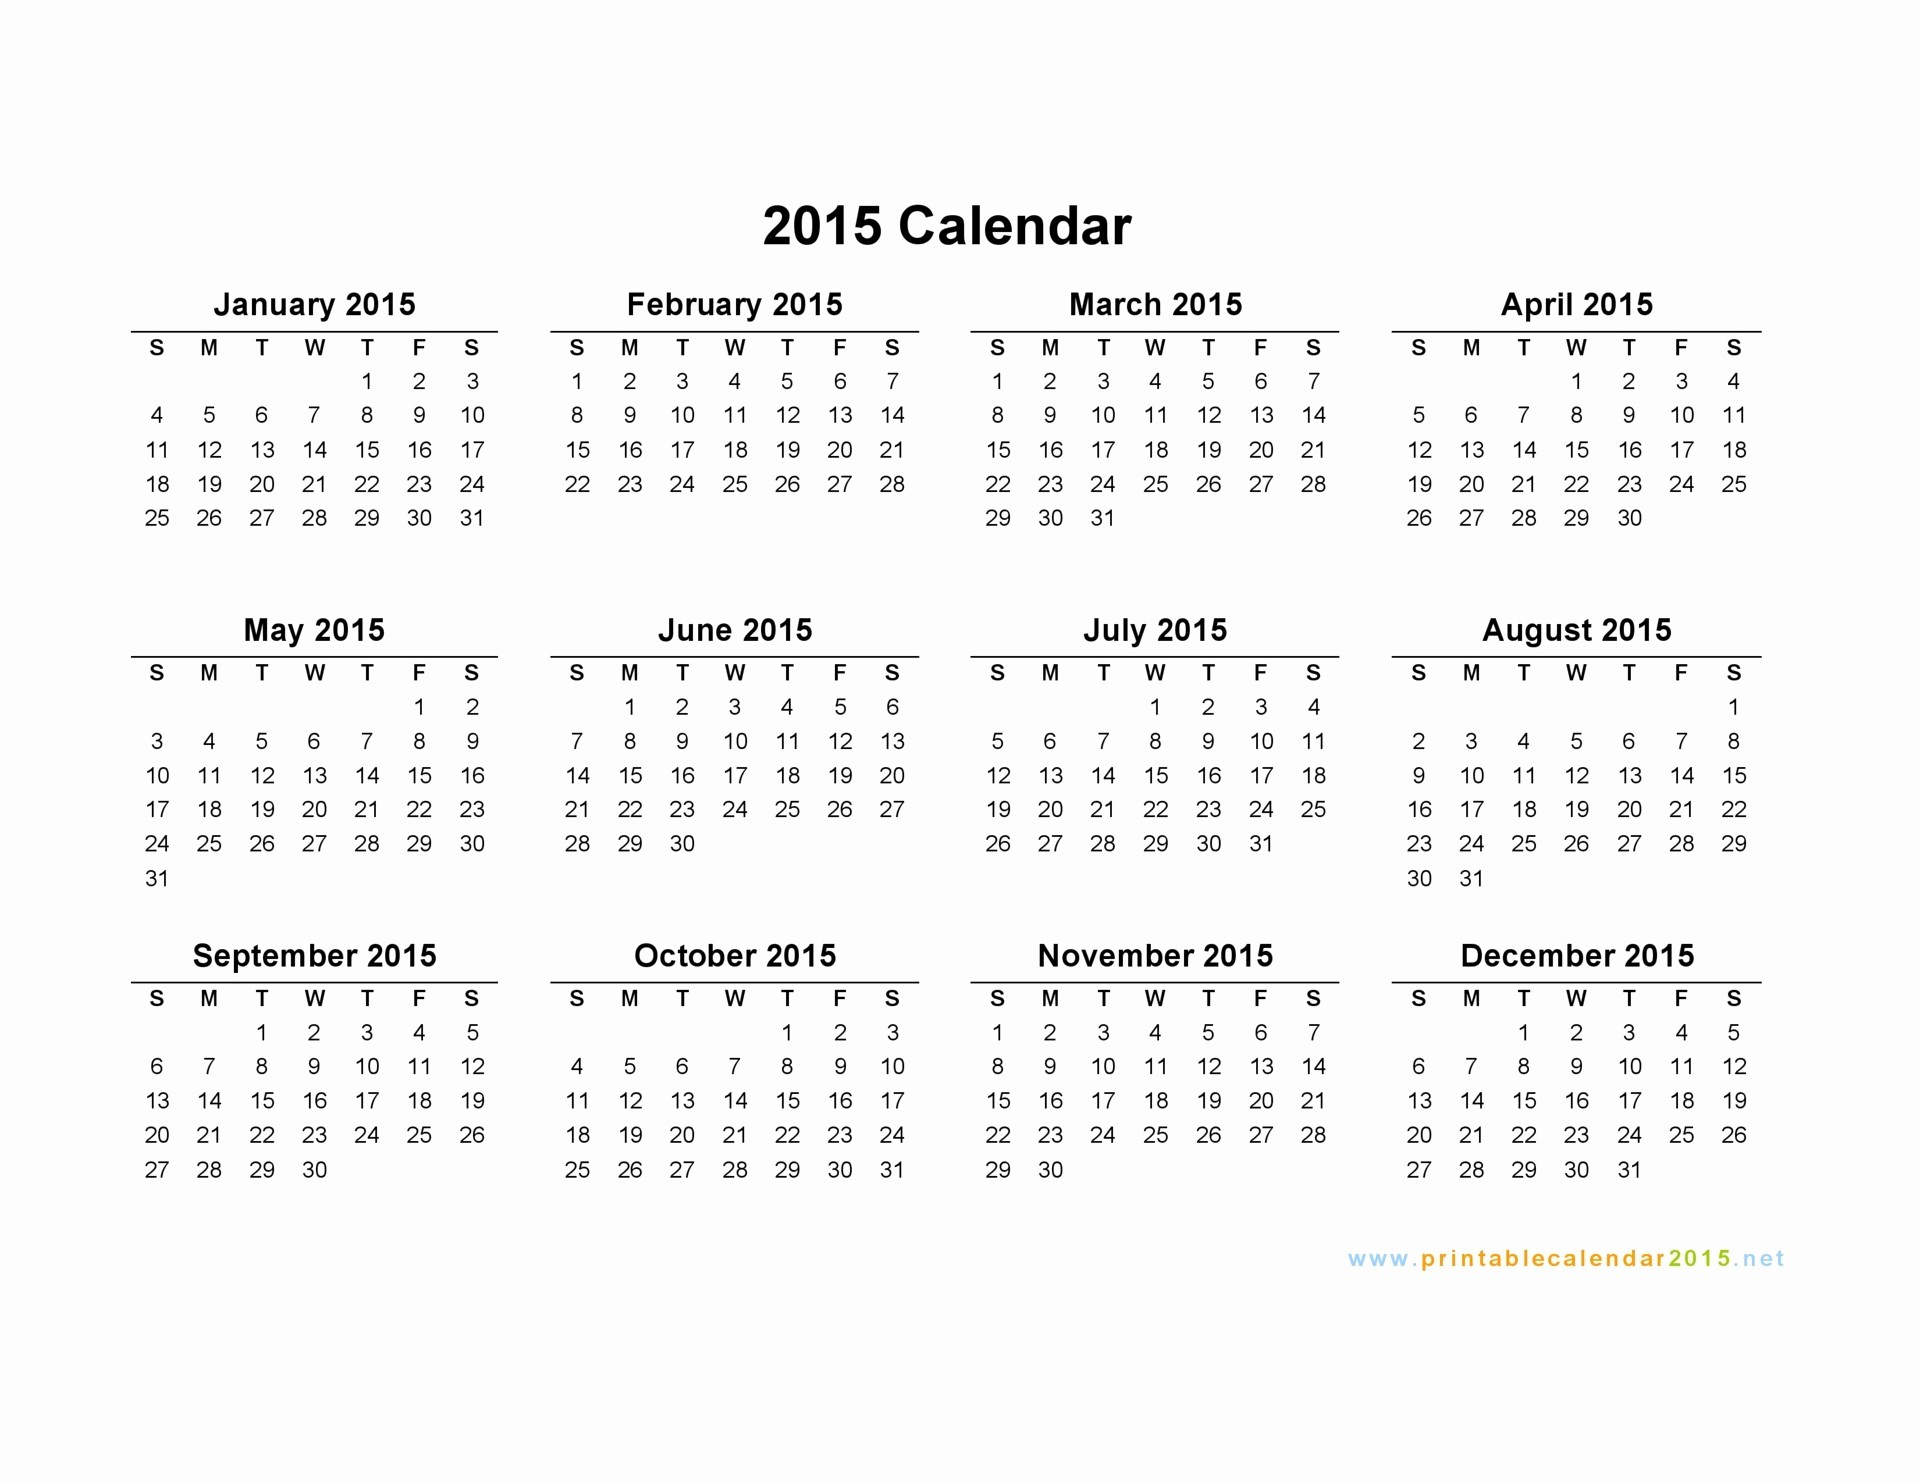 Free Yearly Calendar Templates 2015 Lovely Printable Yearly Calendar 2015 – 2017 Printable Calendar